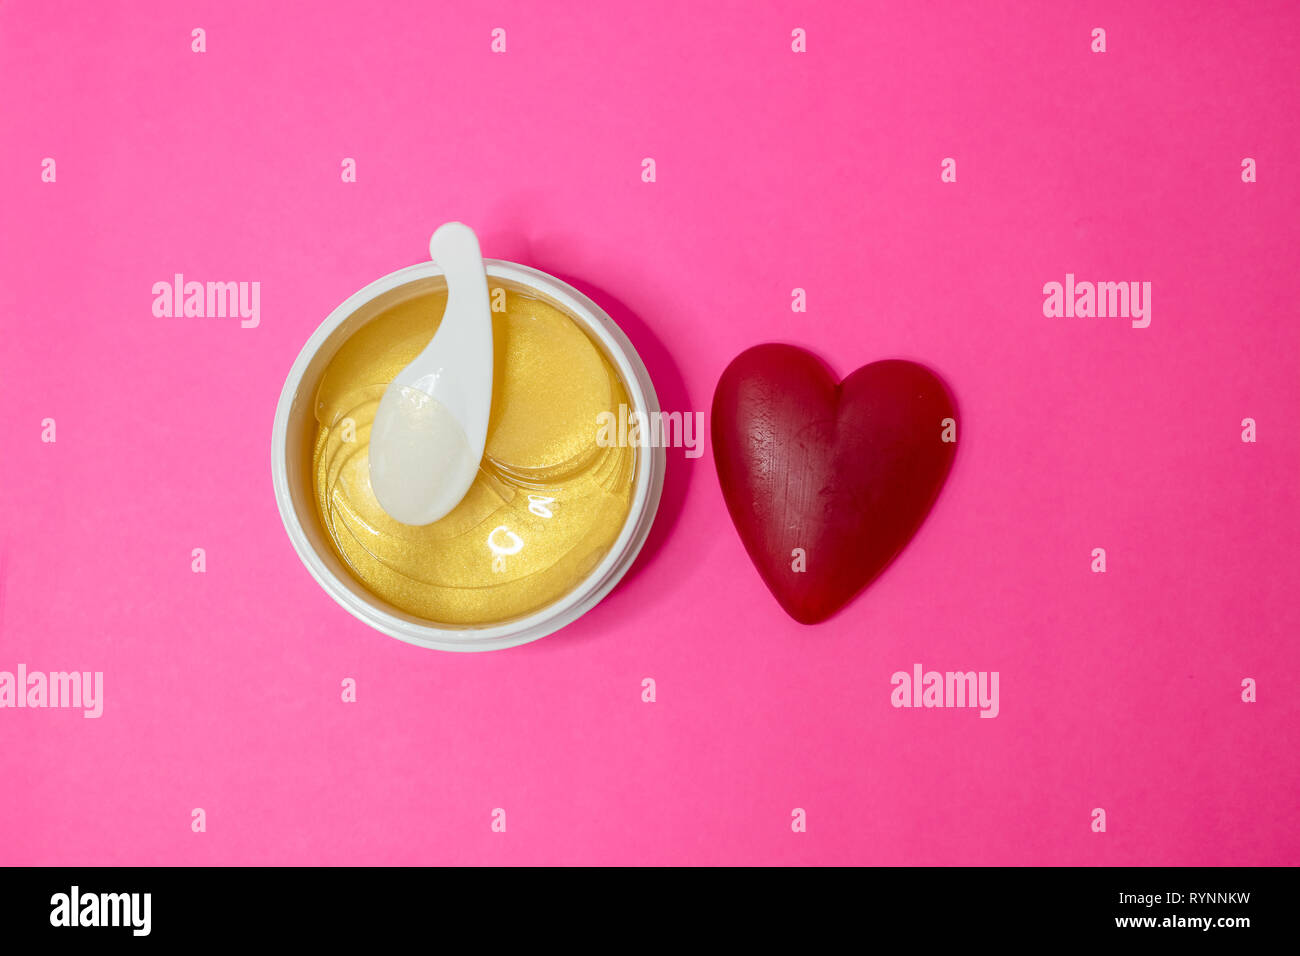 Plastic beauty jar with face mask, container with golden anti aging collagen lifting patches under eyes for woman face care, on pink background - Stock Image